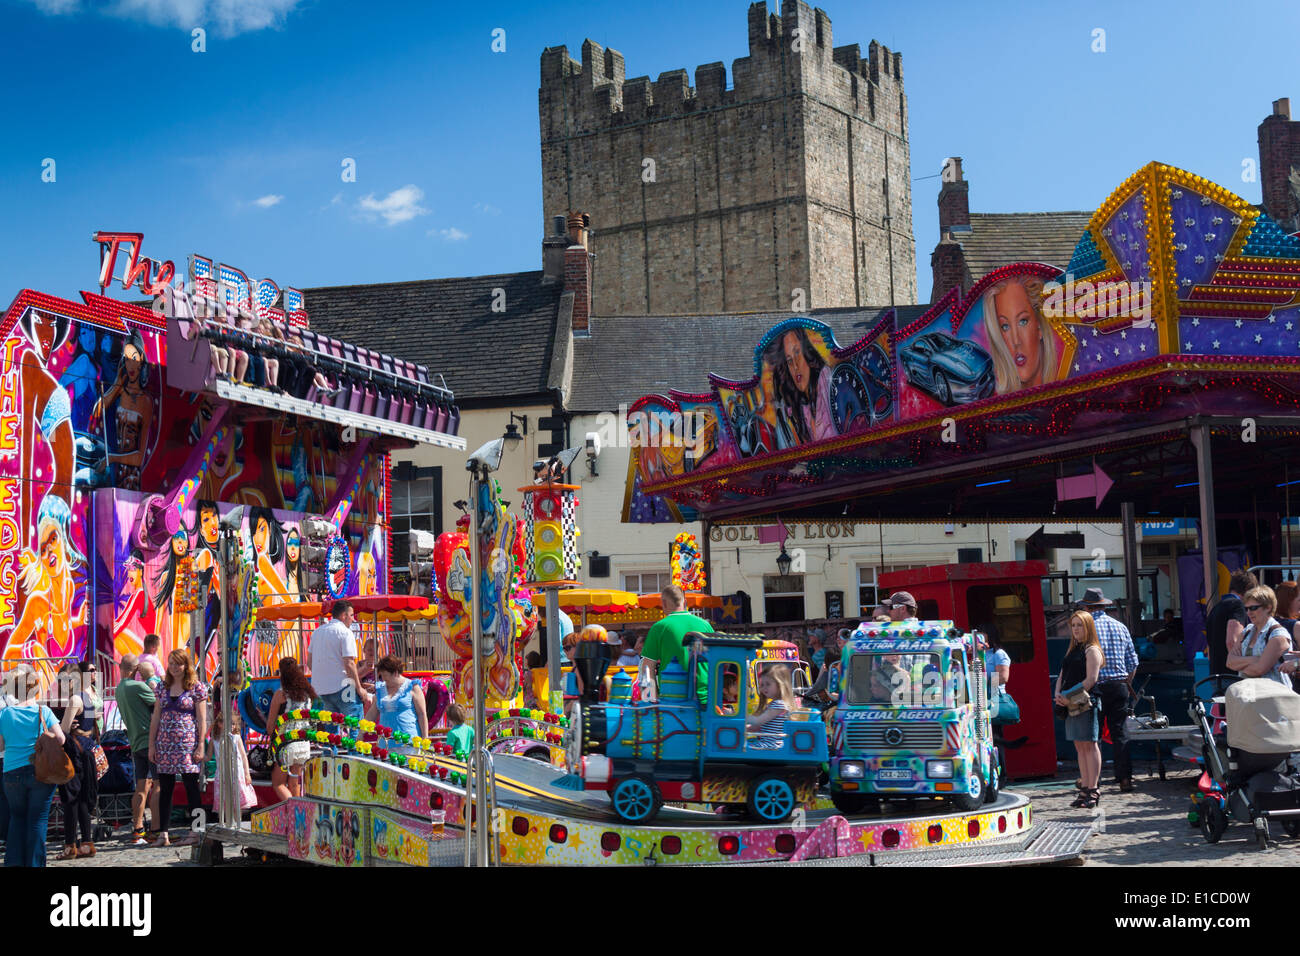 Whit fair In Richmond Market Place North Yorkshire with view of Castle Keep. - Stock Image